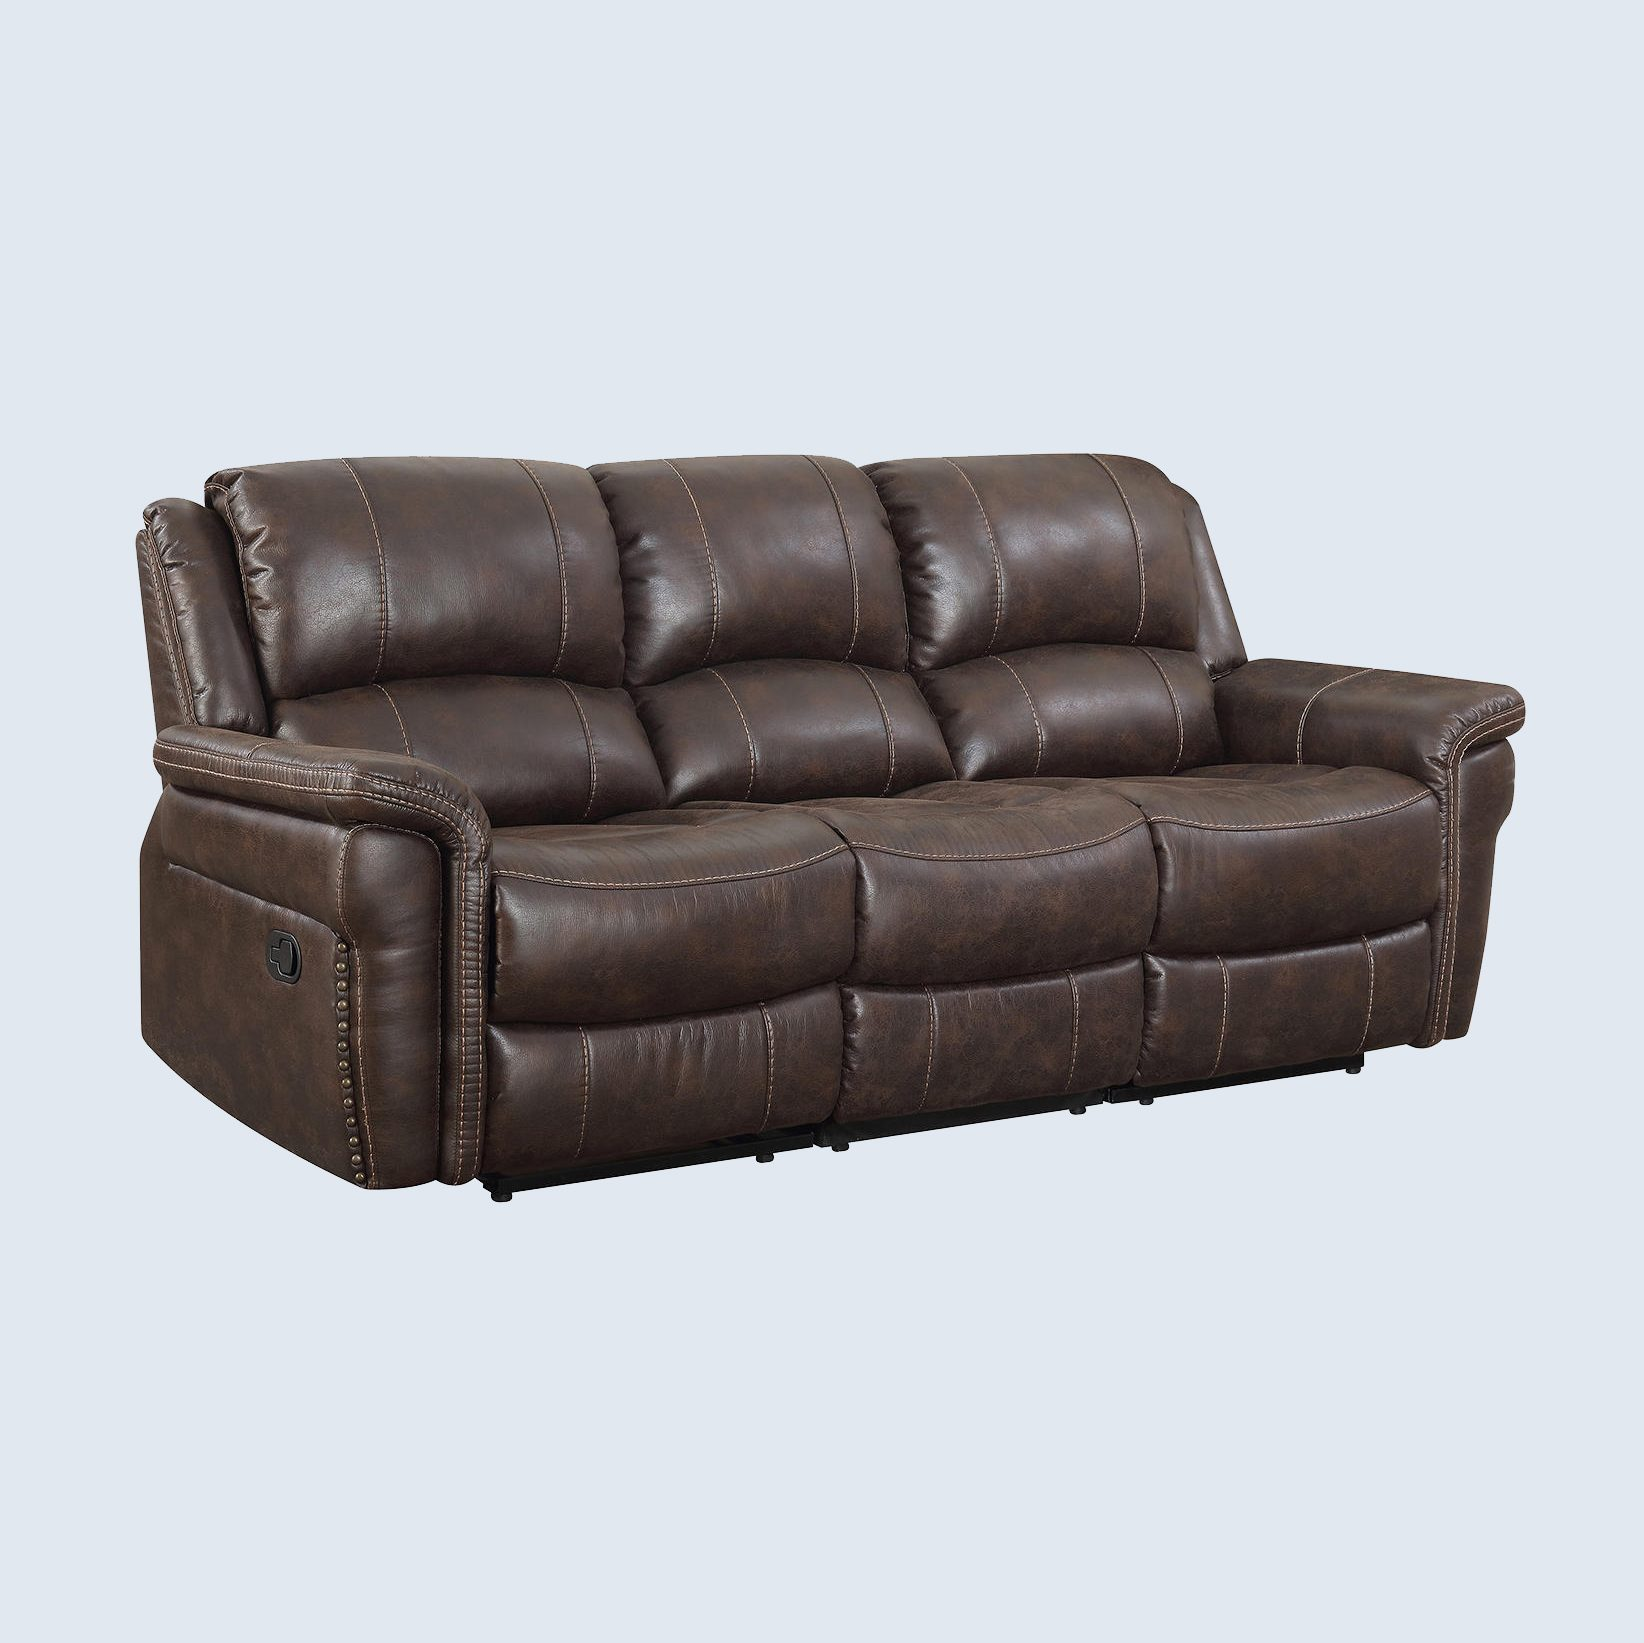 Furniture couch